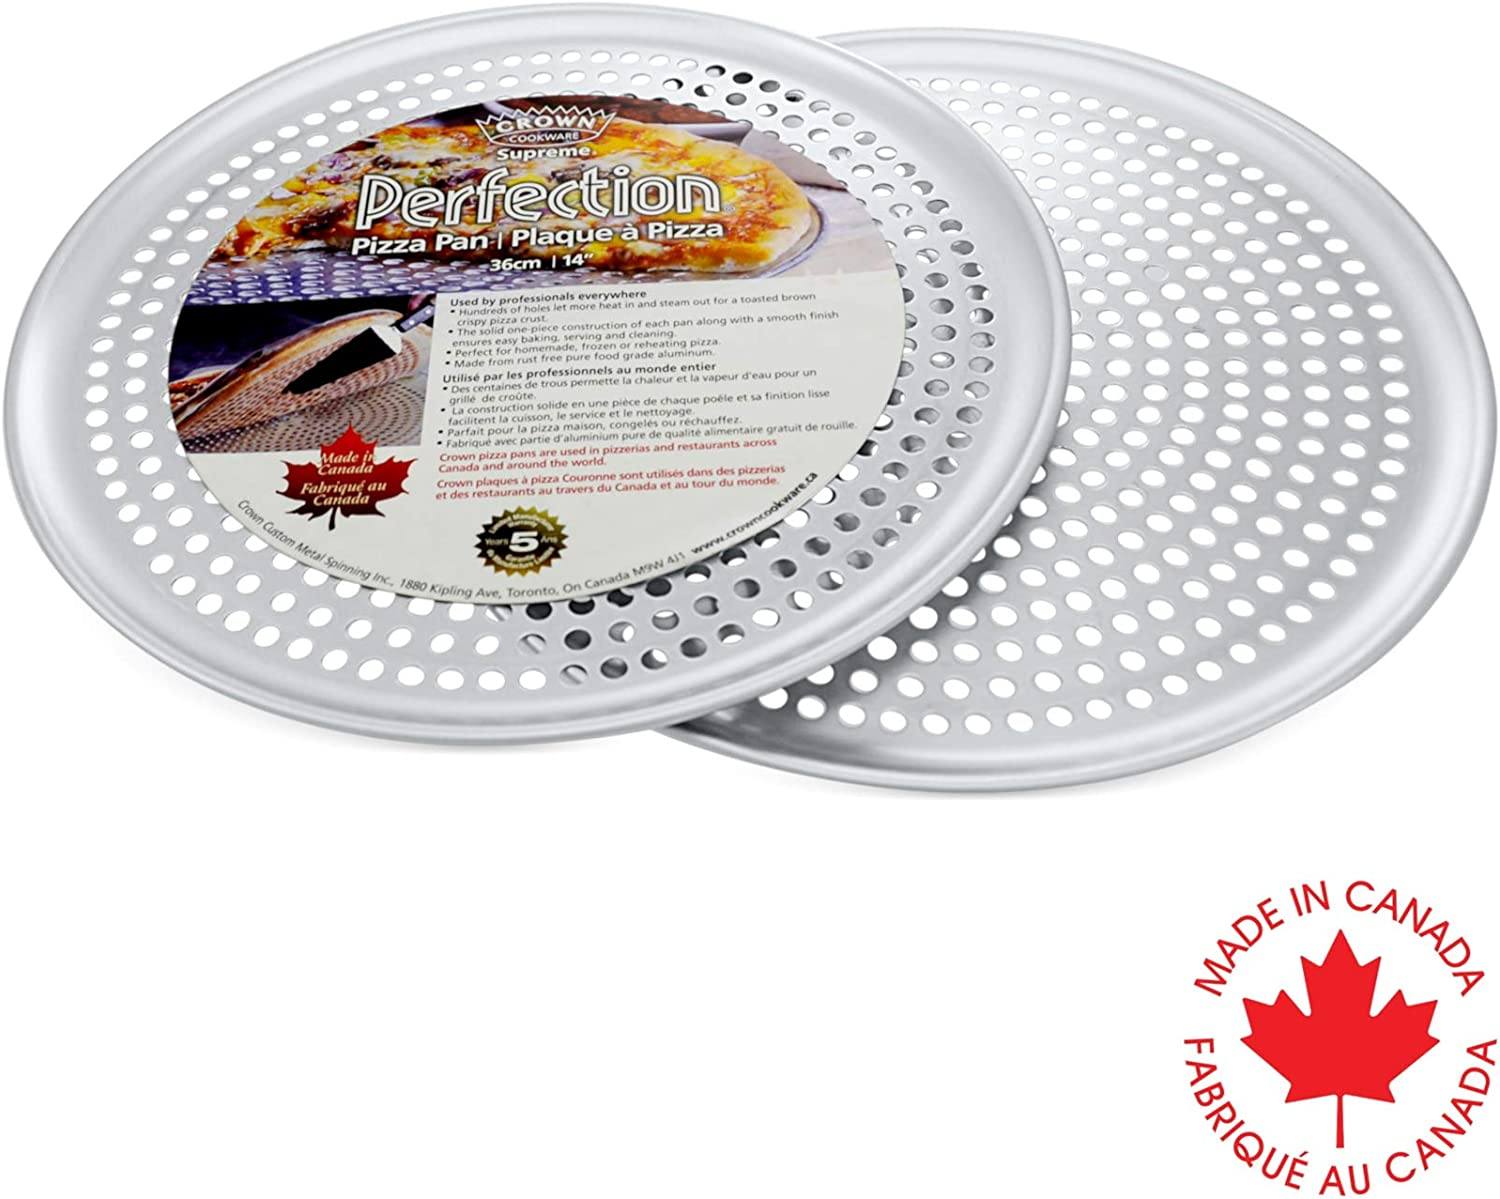 Crown Pizza Pan with Holes 12 inch, 2 Pack, Heavy Duty, Rust Free, Pure Aluminum, Easy to Clean, Perforated Pizza Pan